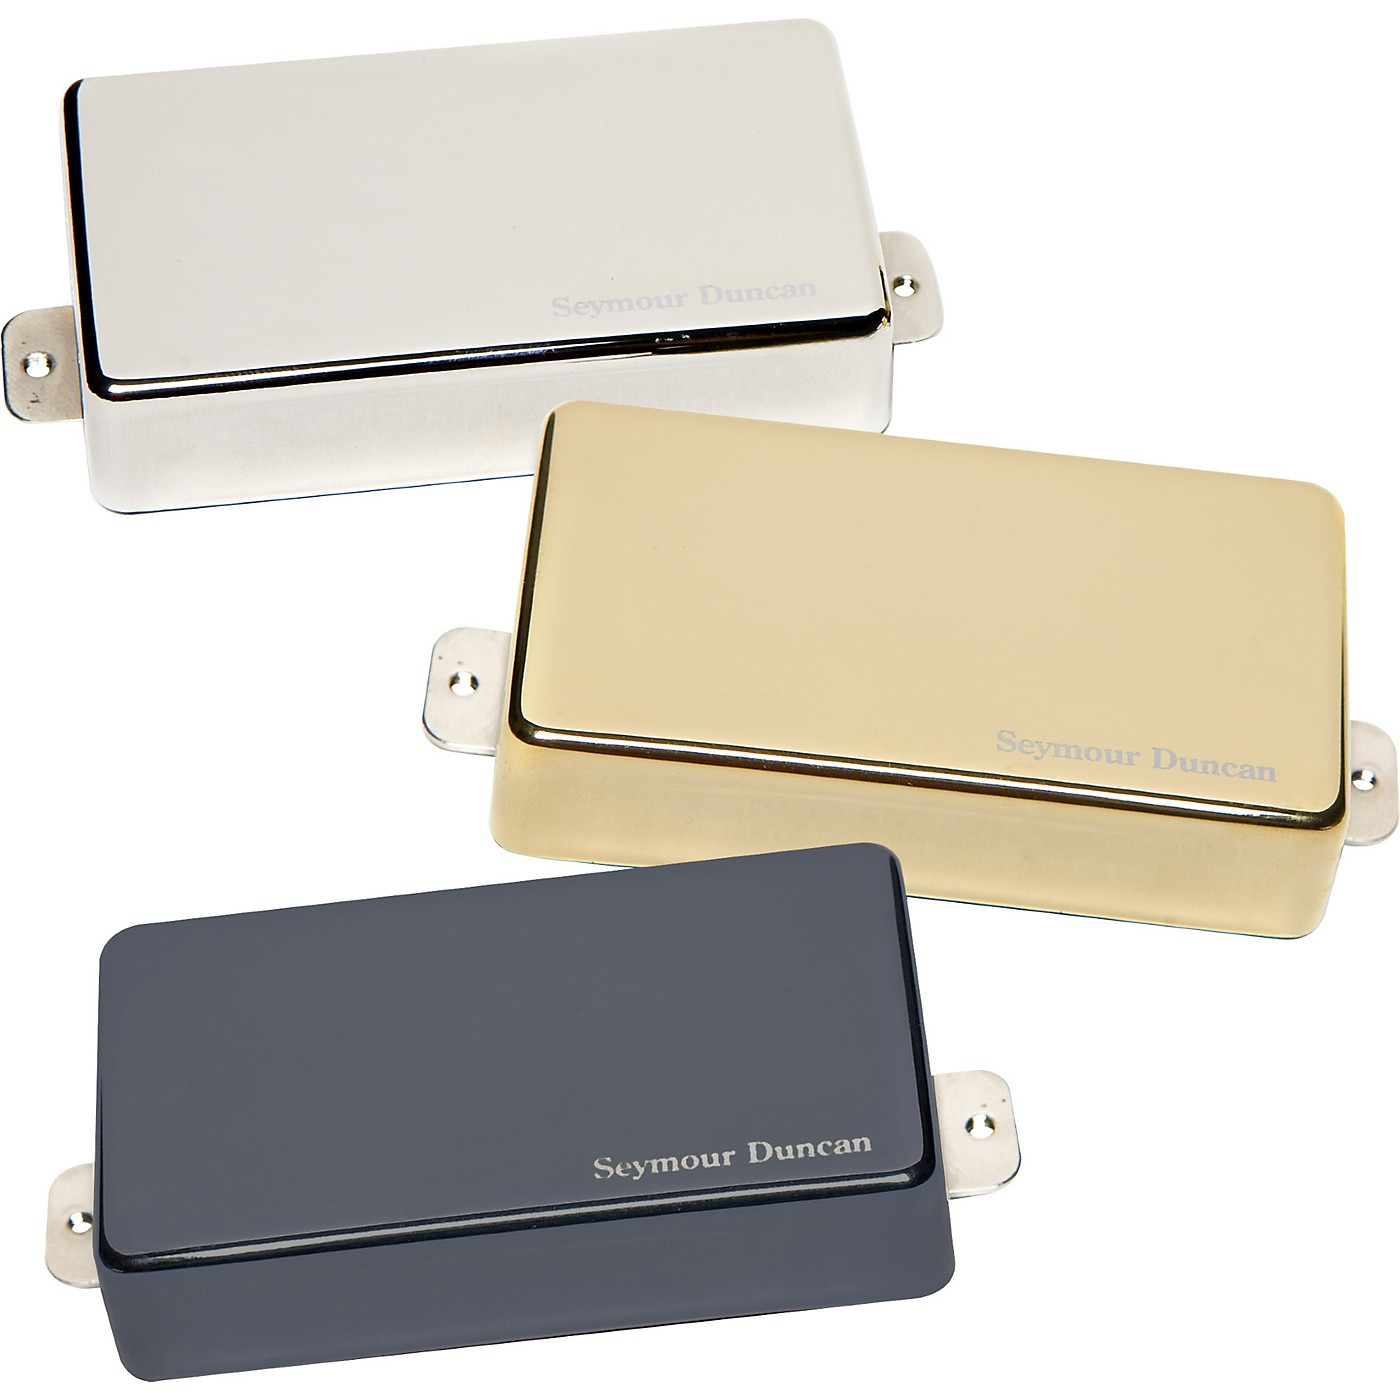 Seymour Duncan AHB-1 Blackouts Humbucker Set with Metal Covers thumbnail